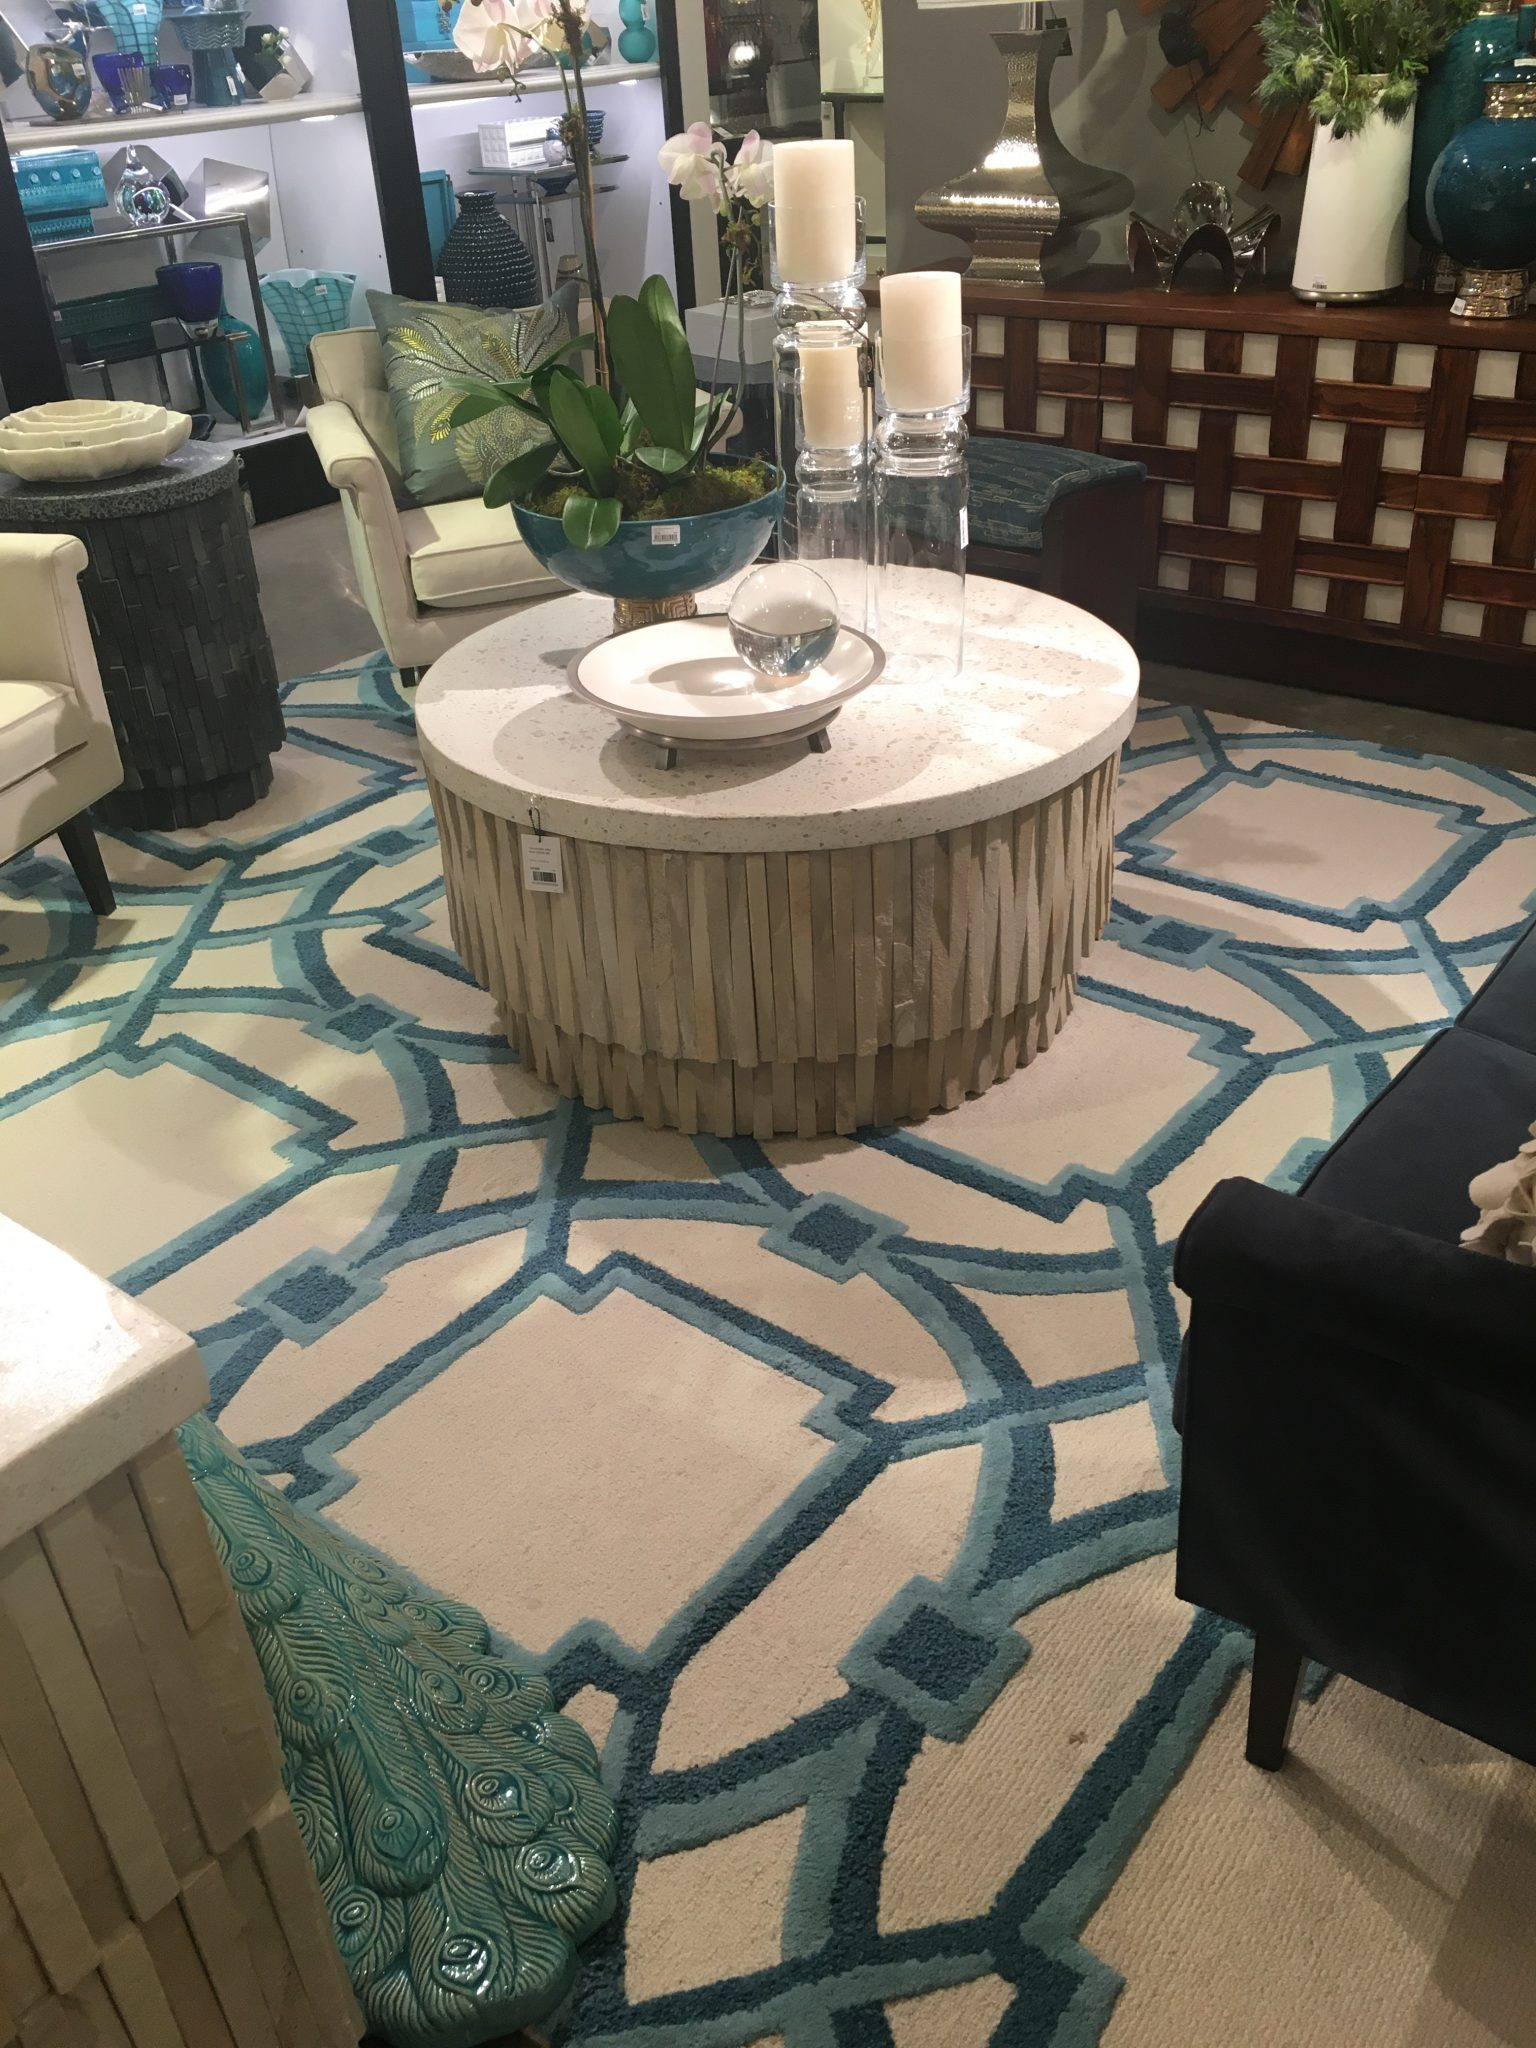 Global Views MODERN Arabesque Rug at AmericasMart Rug News